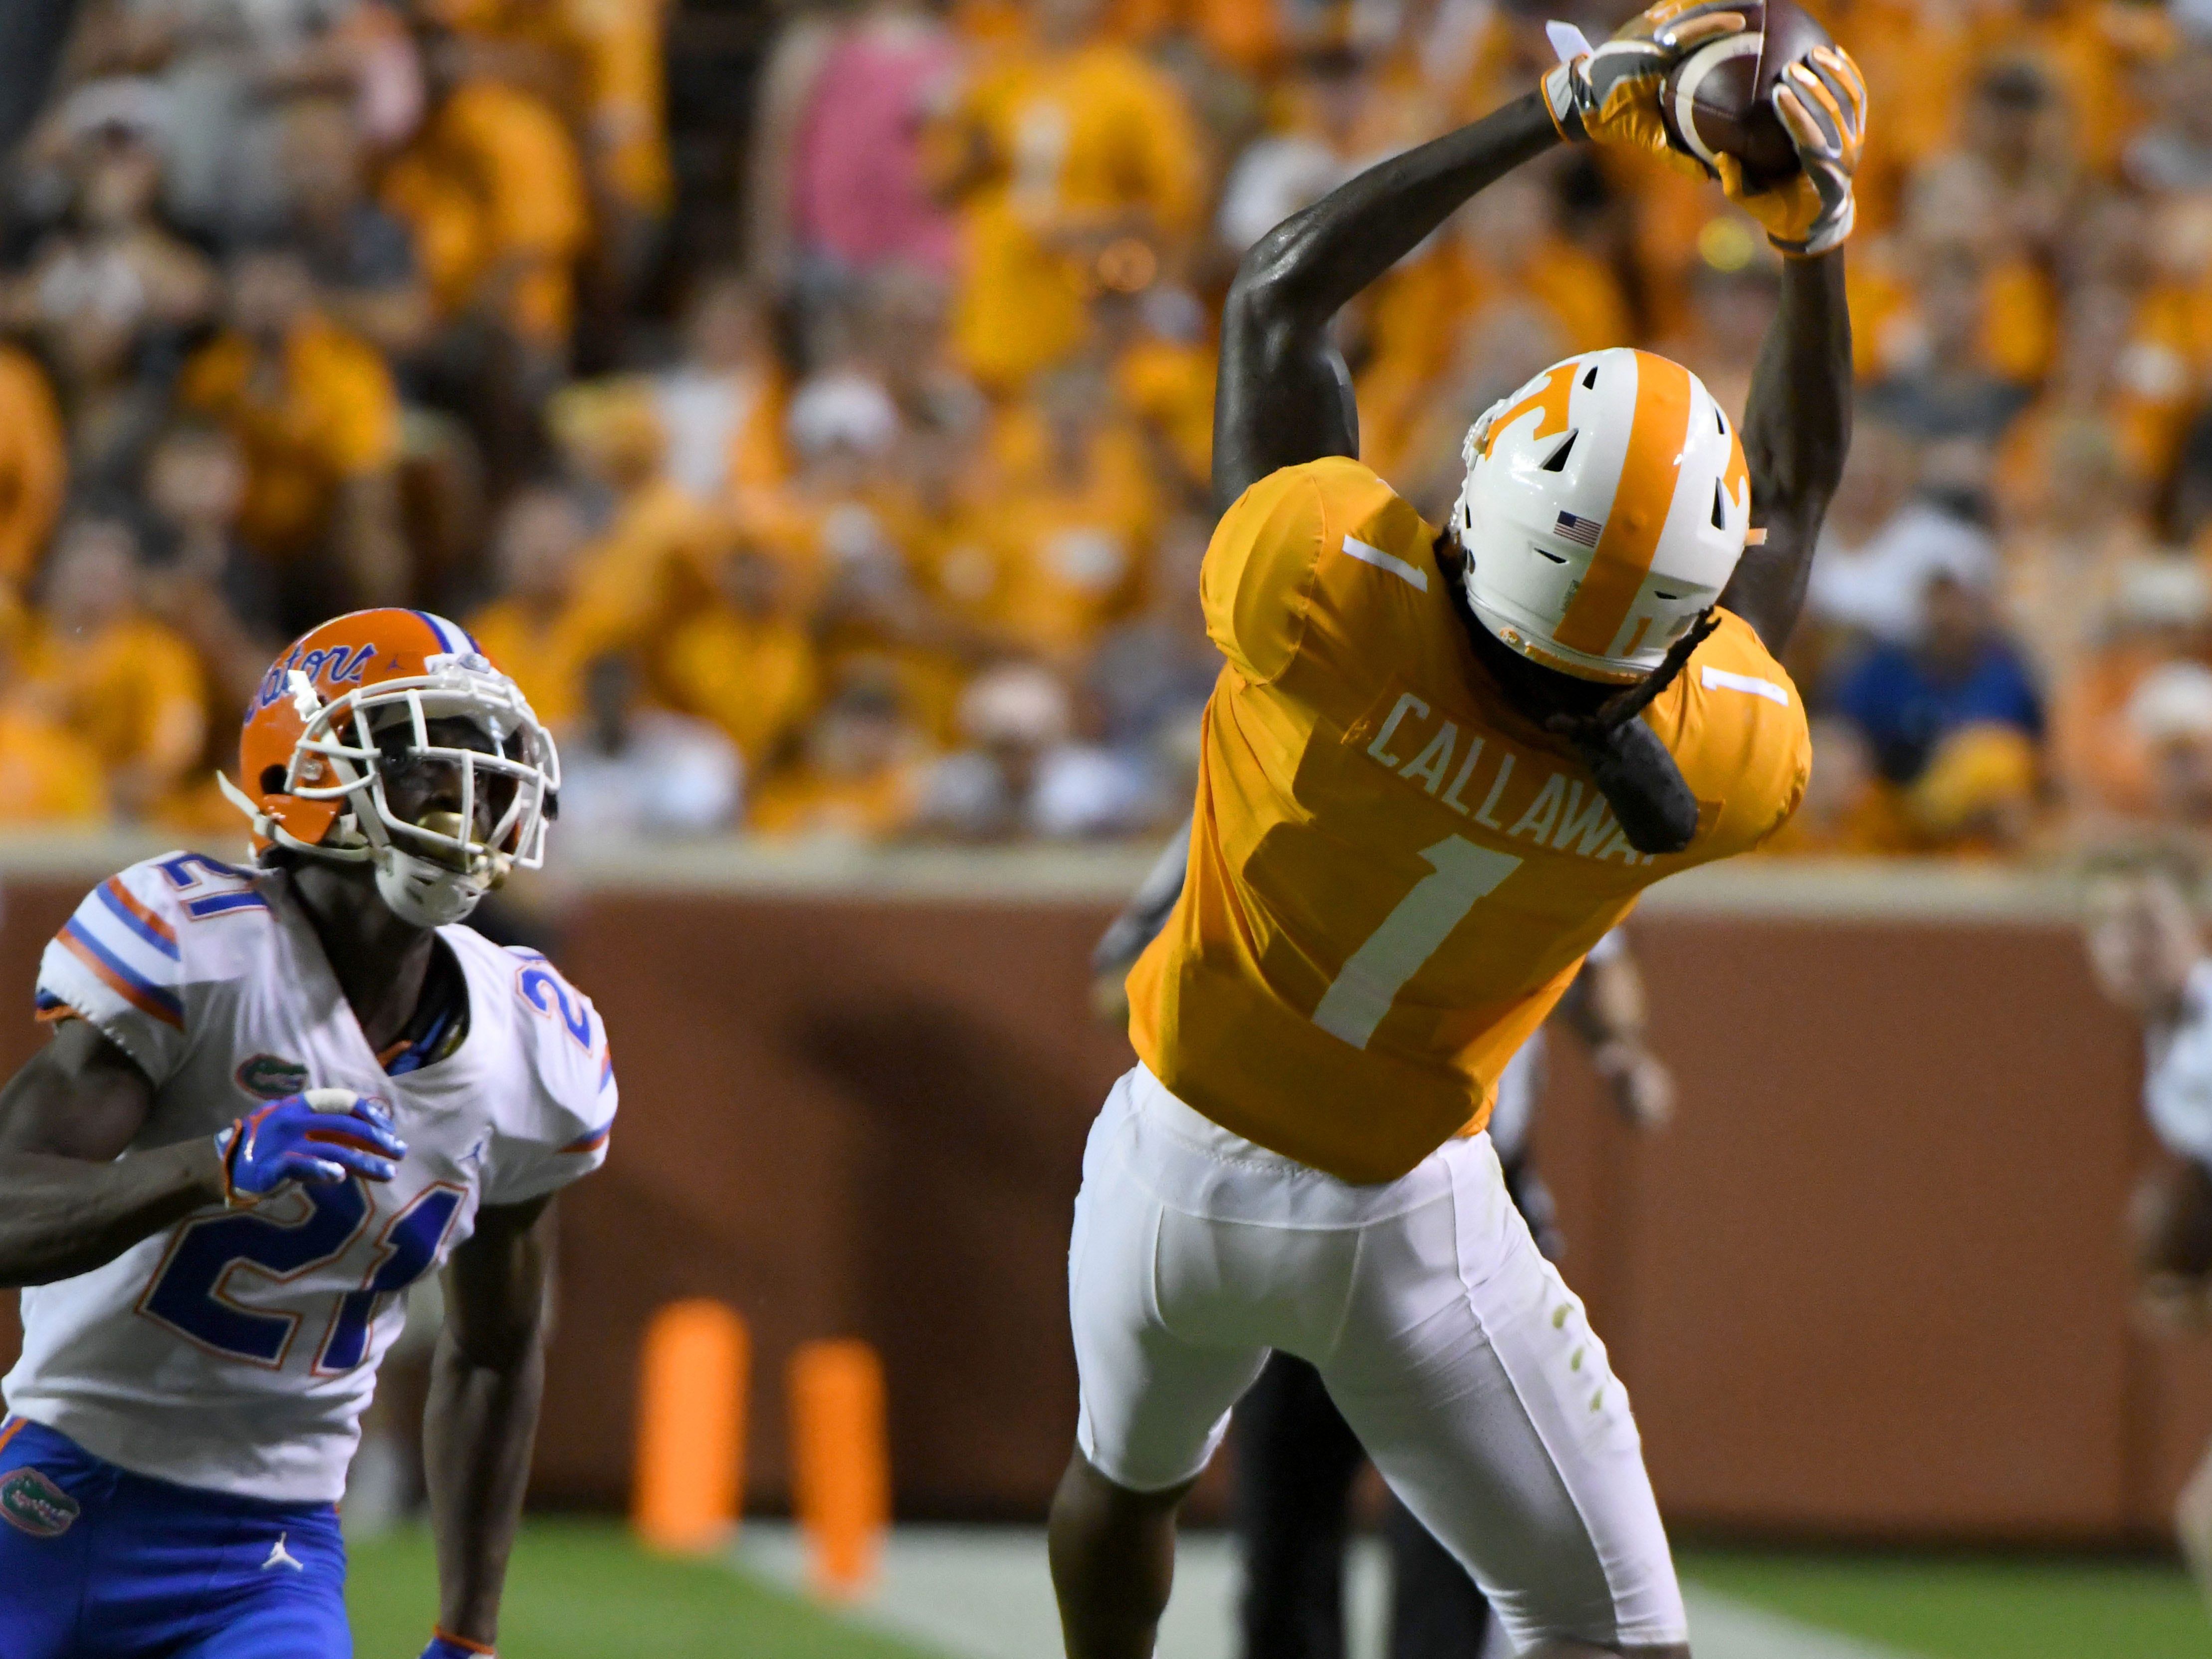 Tennessee wide receiver Marquez Callaway (1) catches a pass during first half action against Florida in Neyland Stadium Saturday, September 22, 2018 in Knoxville, Tenn.